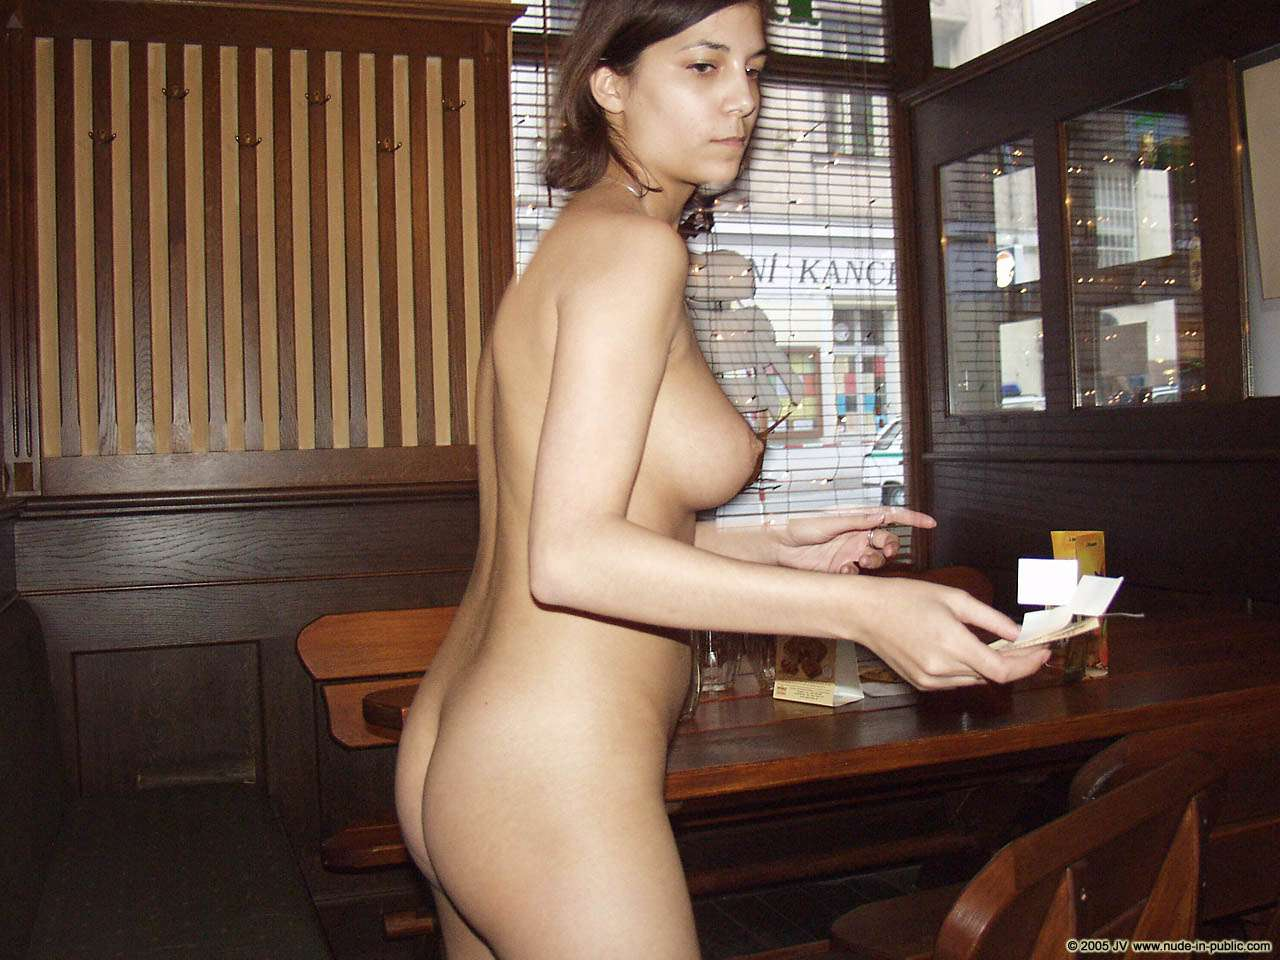 At her work place Serving in the nude